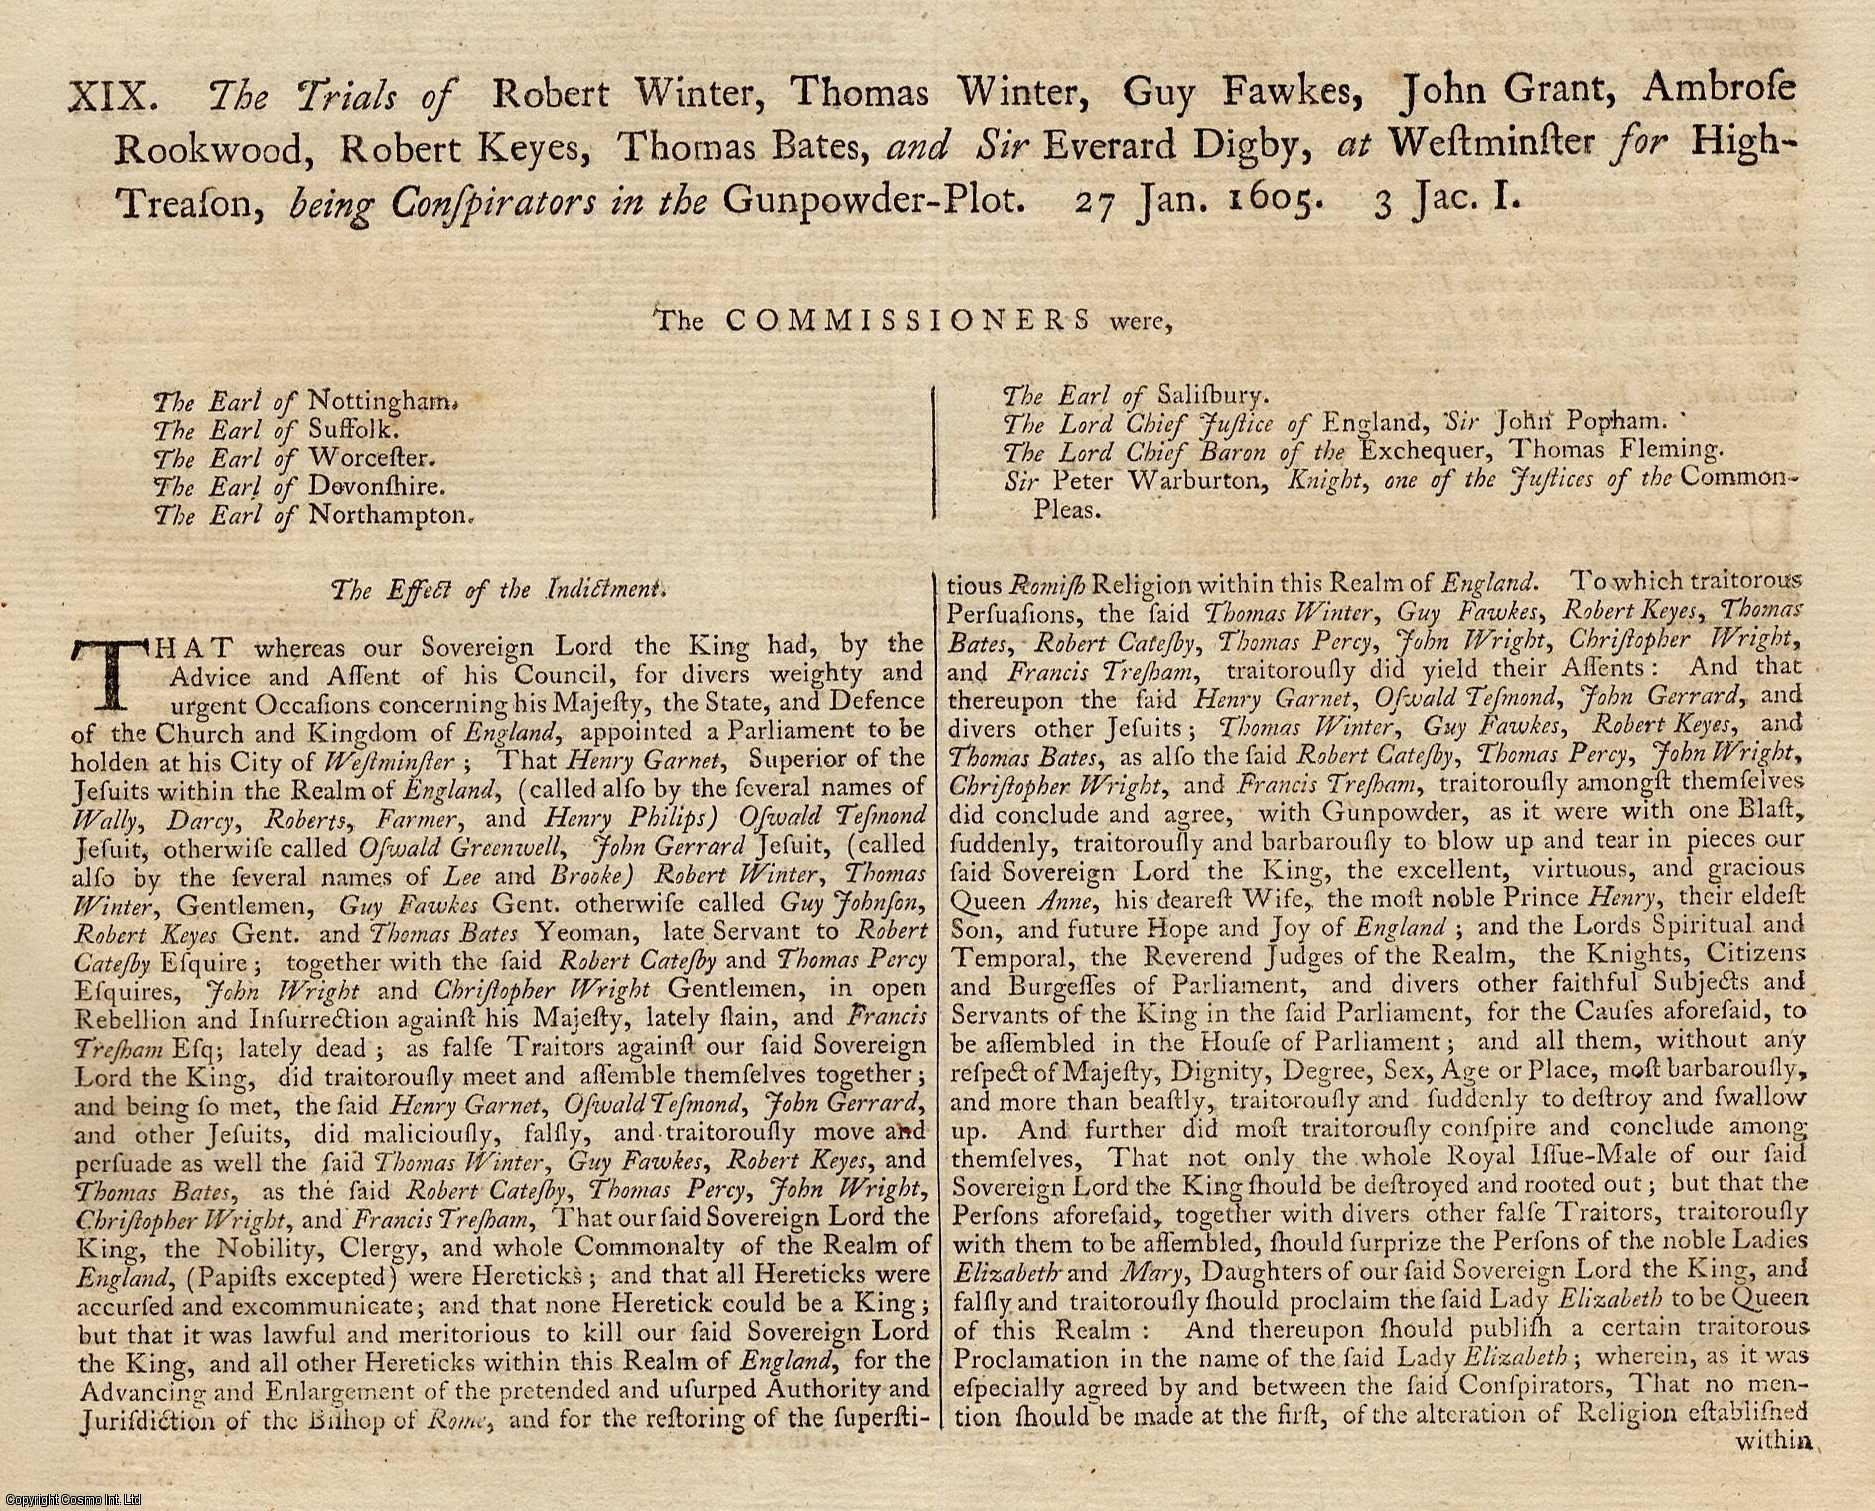 GUNPOWDER PLOT.  The Trials of Robert Winter, Thomas Winter, Guy Fawkes, John Grant, Ambrose Rookwood, Robert Keyes, Thomas Bates & Sir Everard Digby, at Westmister for High Treason, being Conspirators in the Gunpowder Plot, 27 January, 1605. TOGETHER WITH The Trial of Henry Garnet, Superior of the Jesuits in England, at the Guild Hall of London, for High Treason, being a Conspirator in the Gunpowder Plot, 28 March 1606., [Trial].